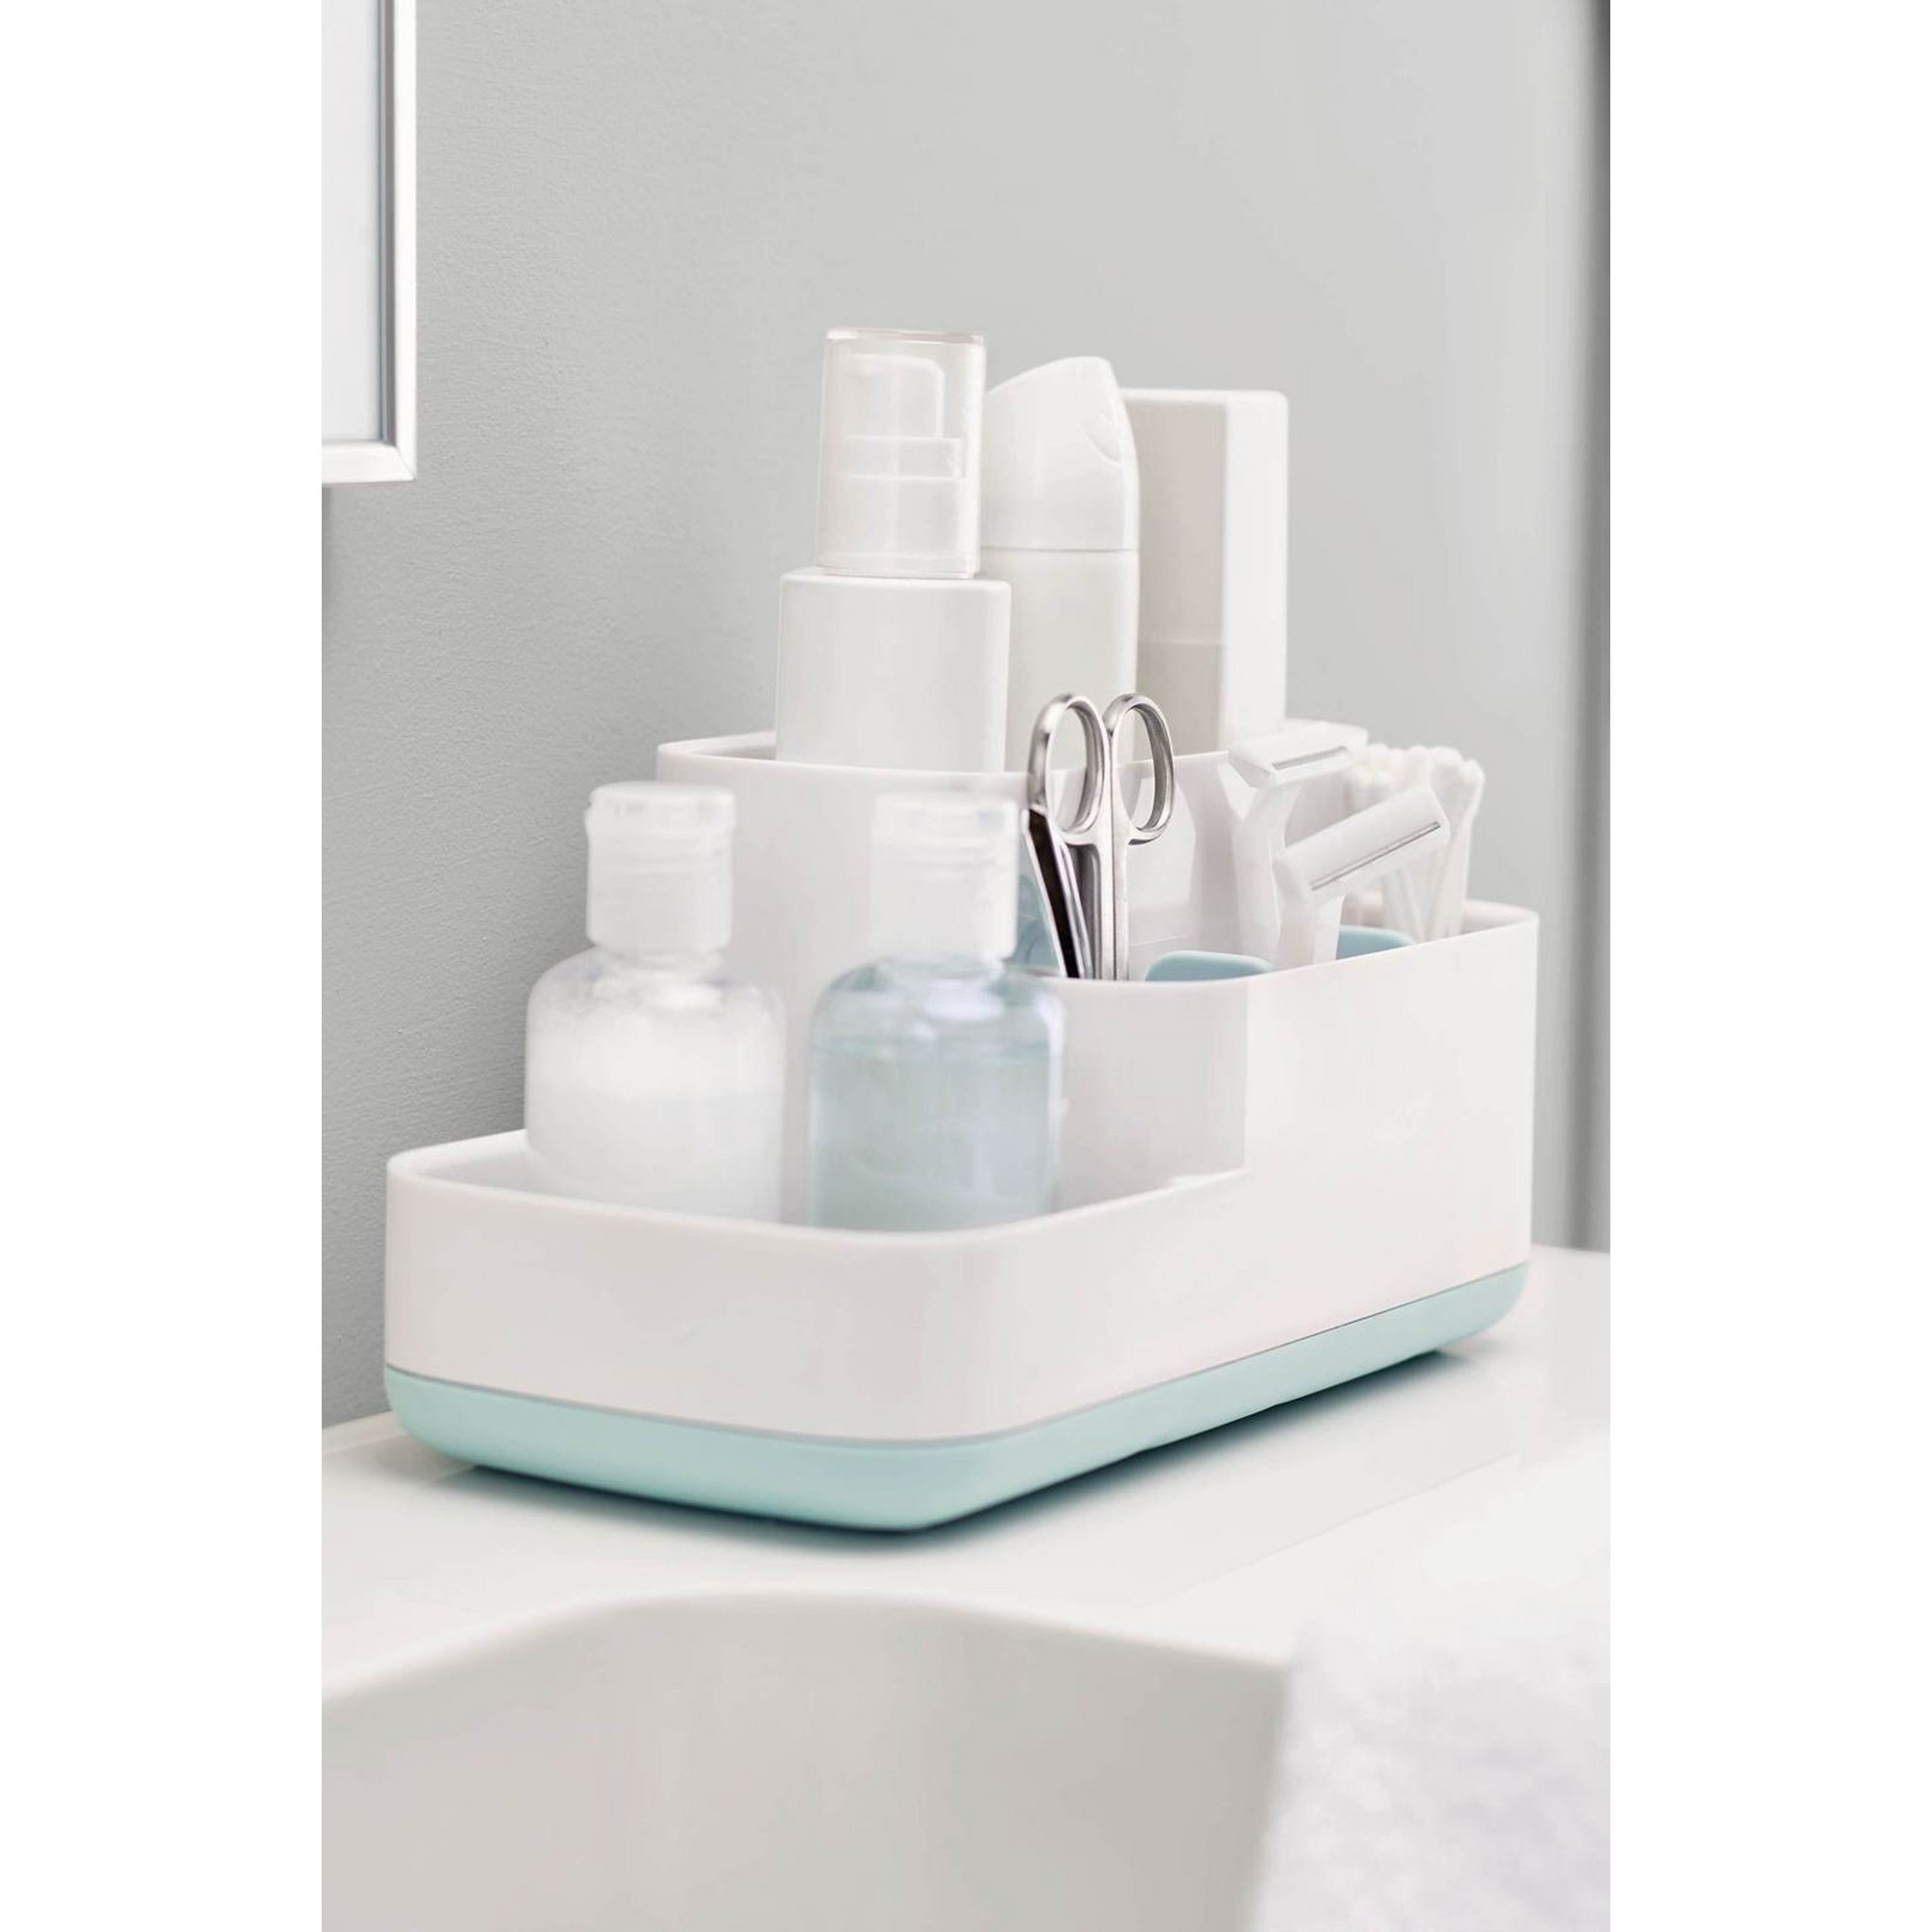 Image of Joseph Joseph Bathroom Caddy